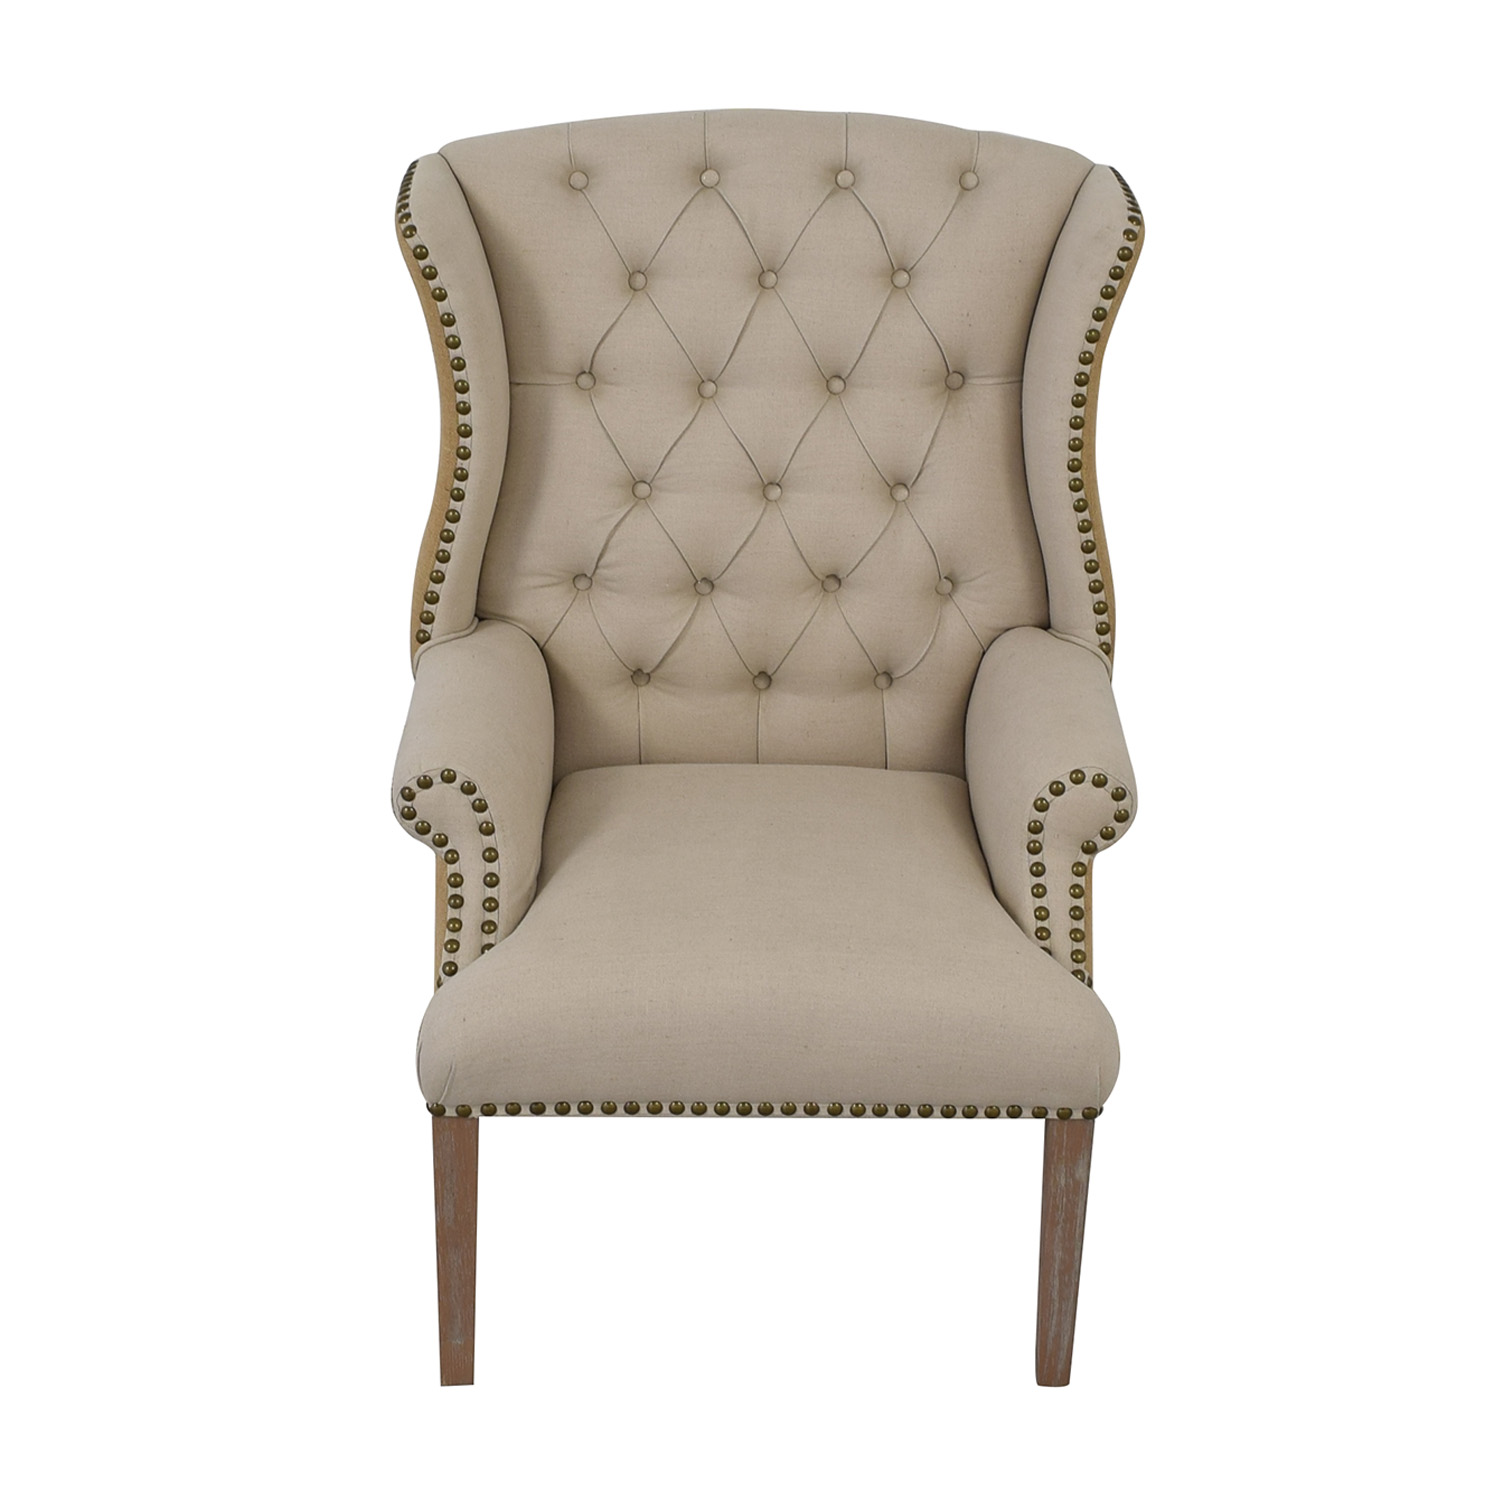 Hickory Chair Hickory Chair Traditional Lounge Chair beige